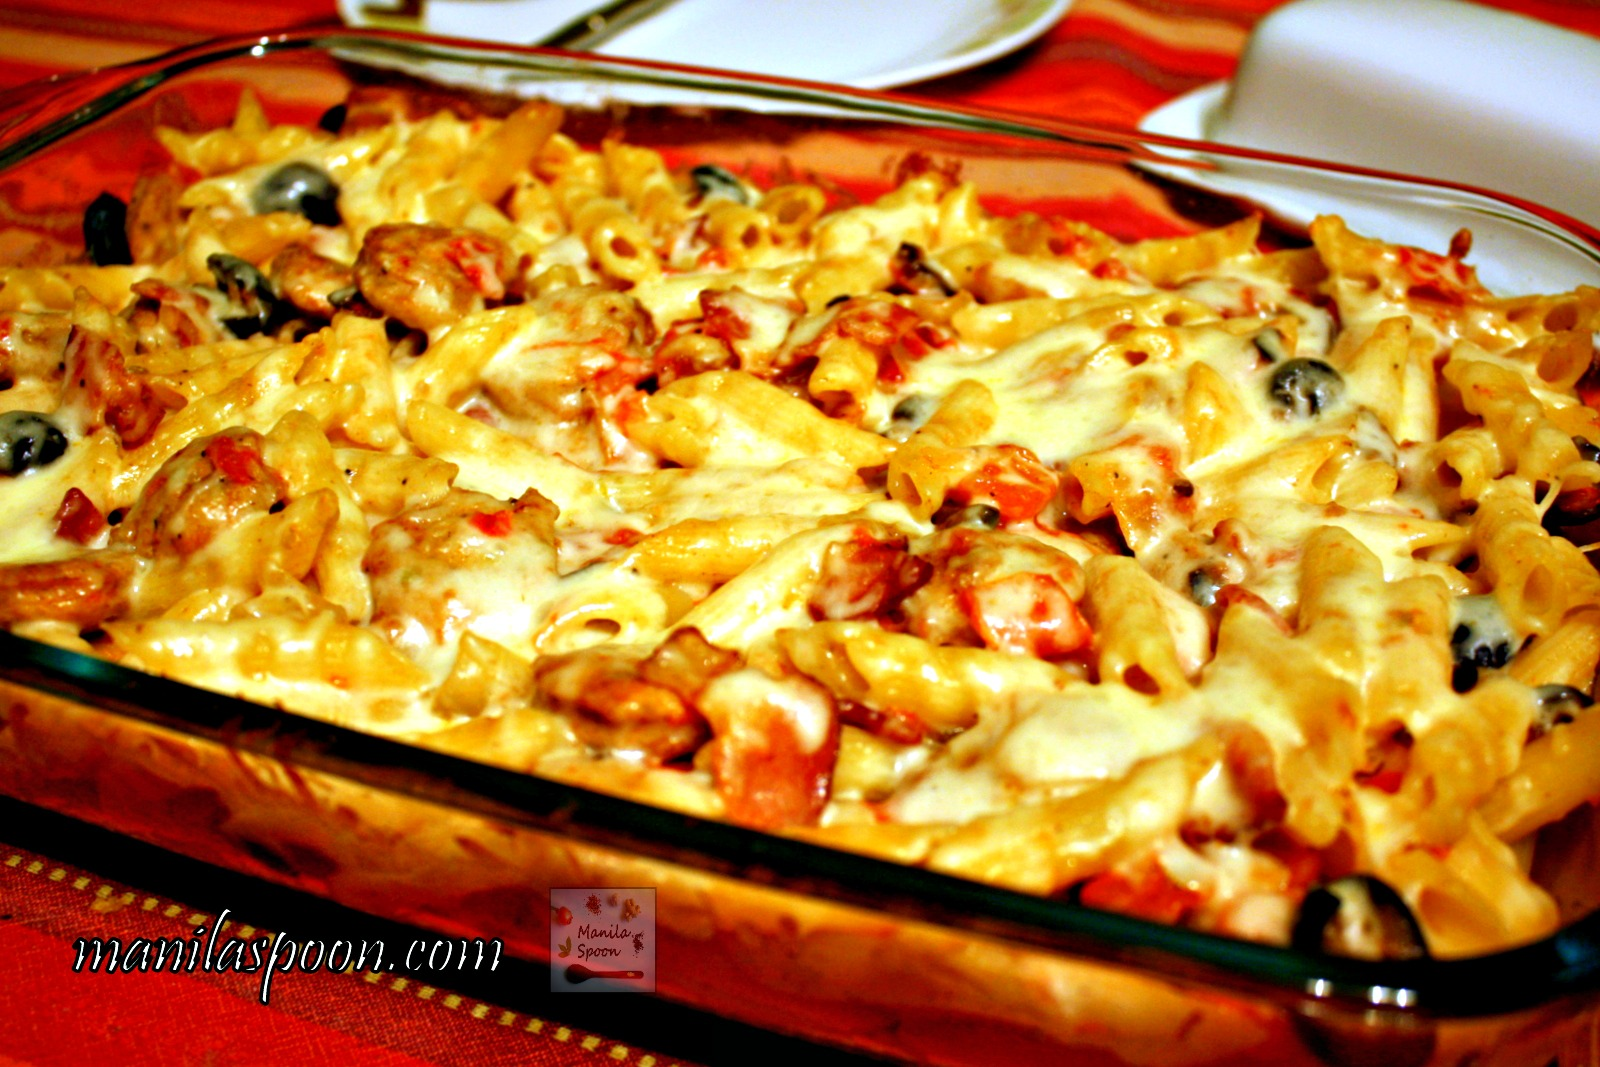 This casserole dish is deliciously comforting! With bacon, sausages, olives and cheese - - you can'T易于使用这种简单而美味的香肠和意大利面烘烤!